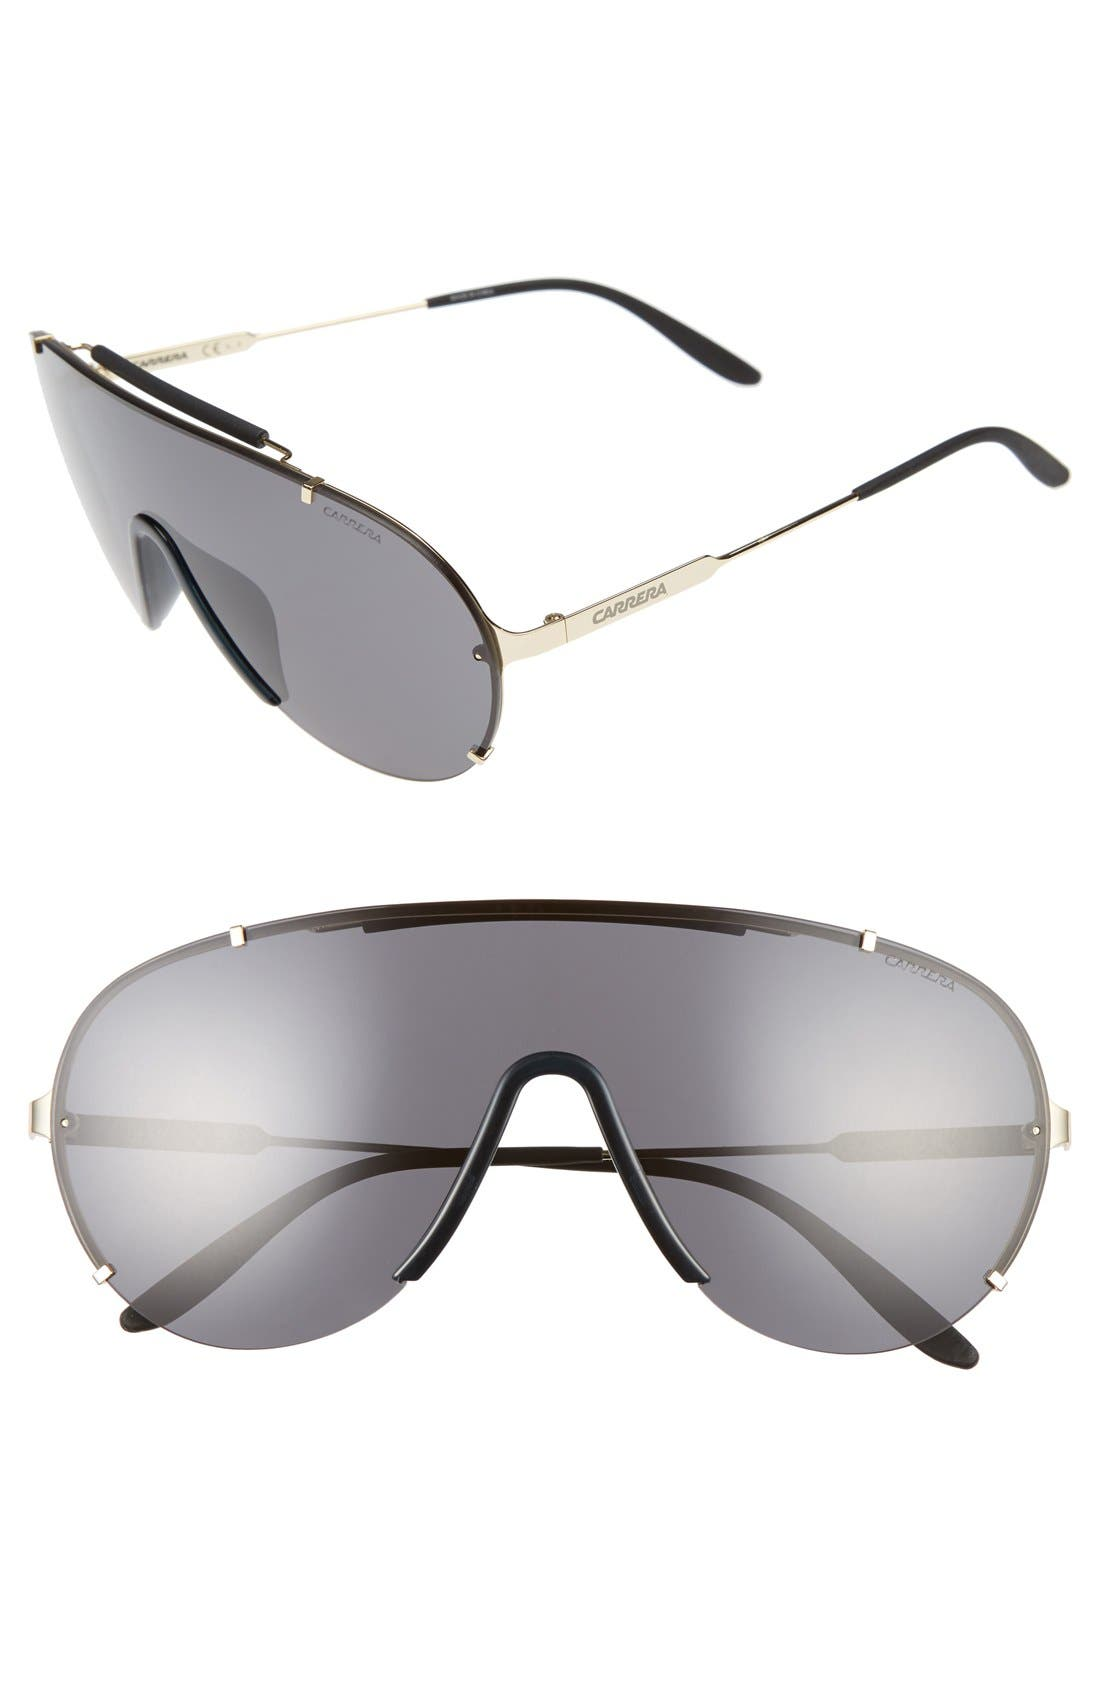 99mm Sunglasses,                             Main thumbnail 1, color,                             Gold